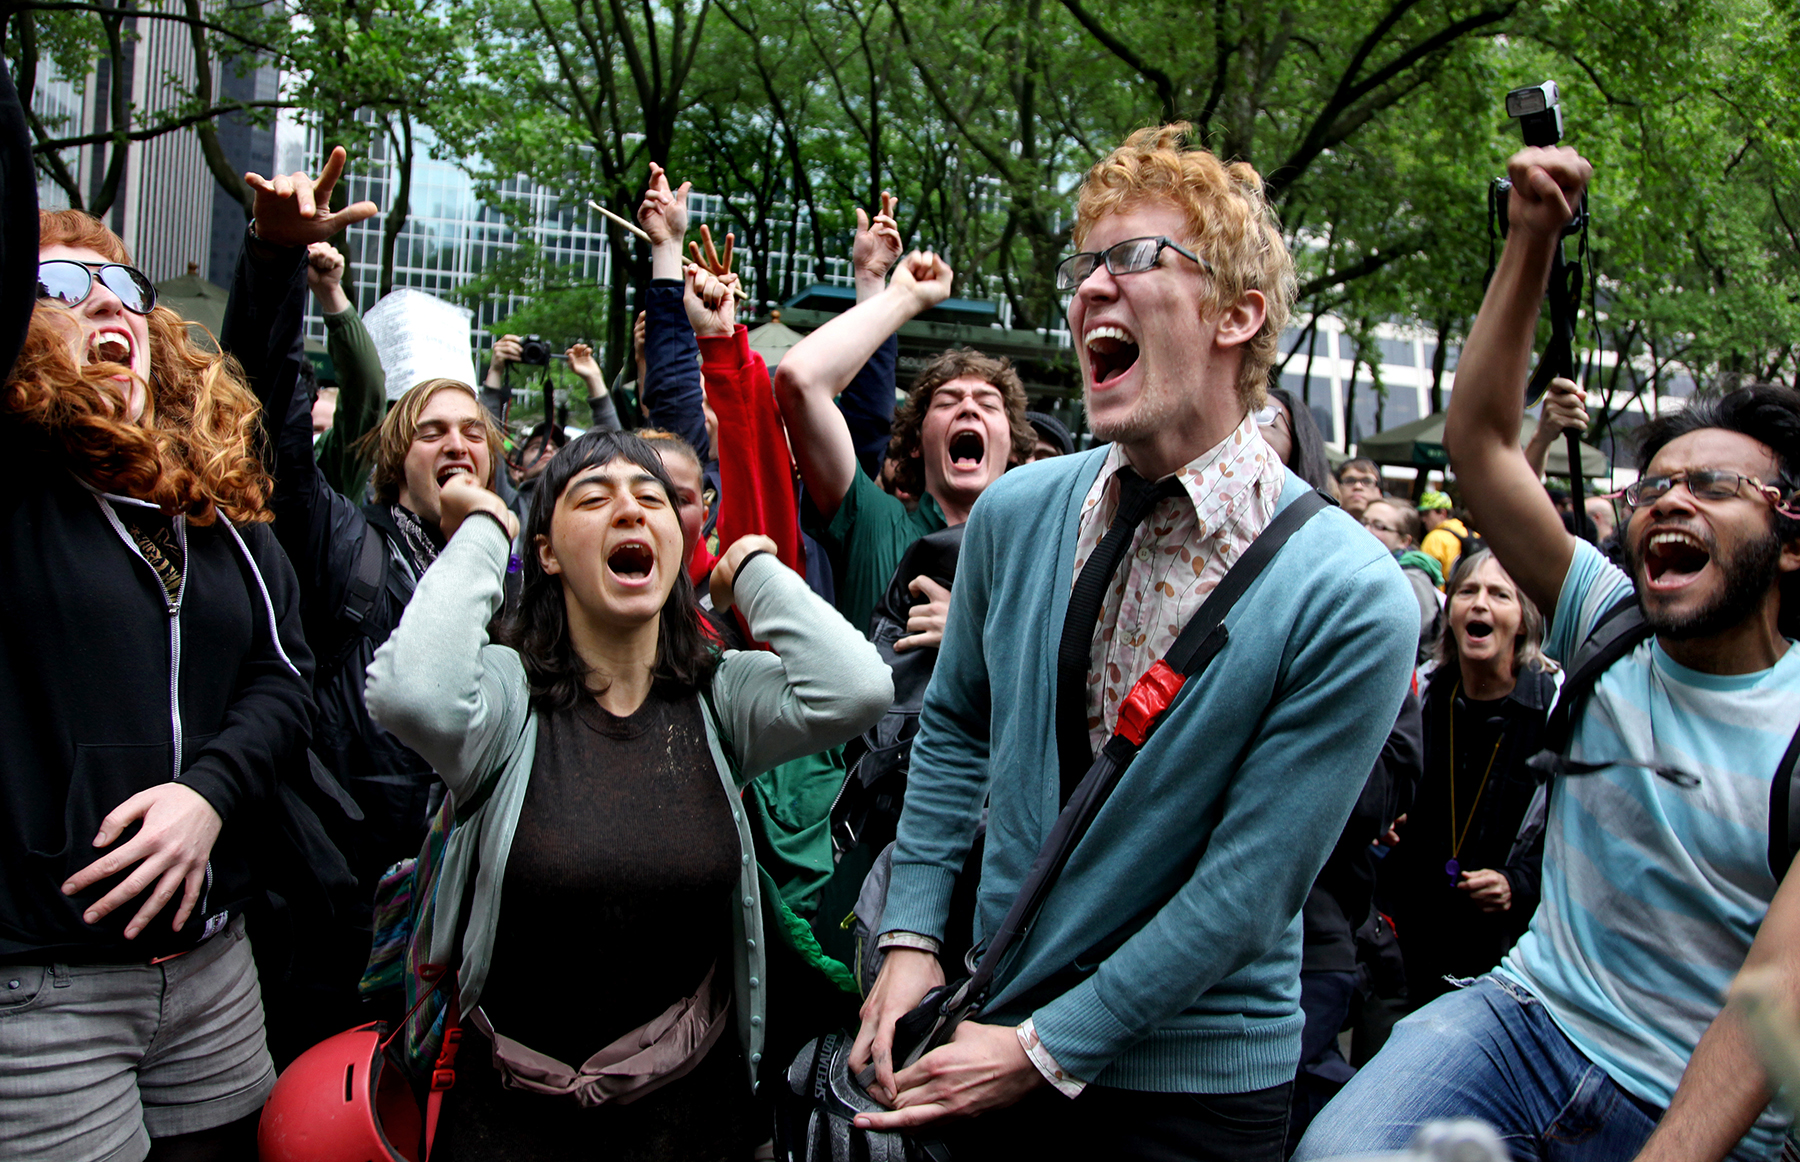 Occupy Wall Street/May Day rally, 2012